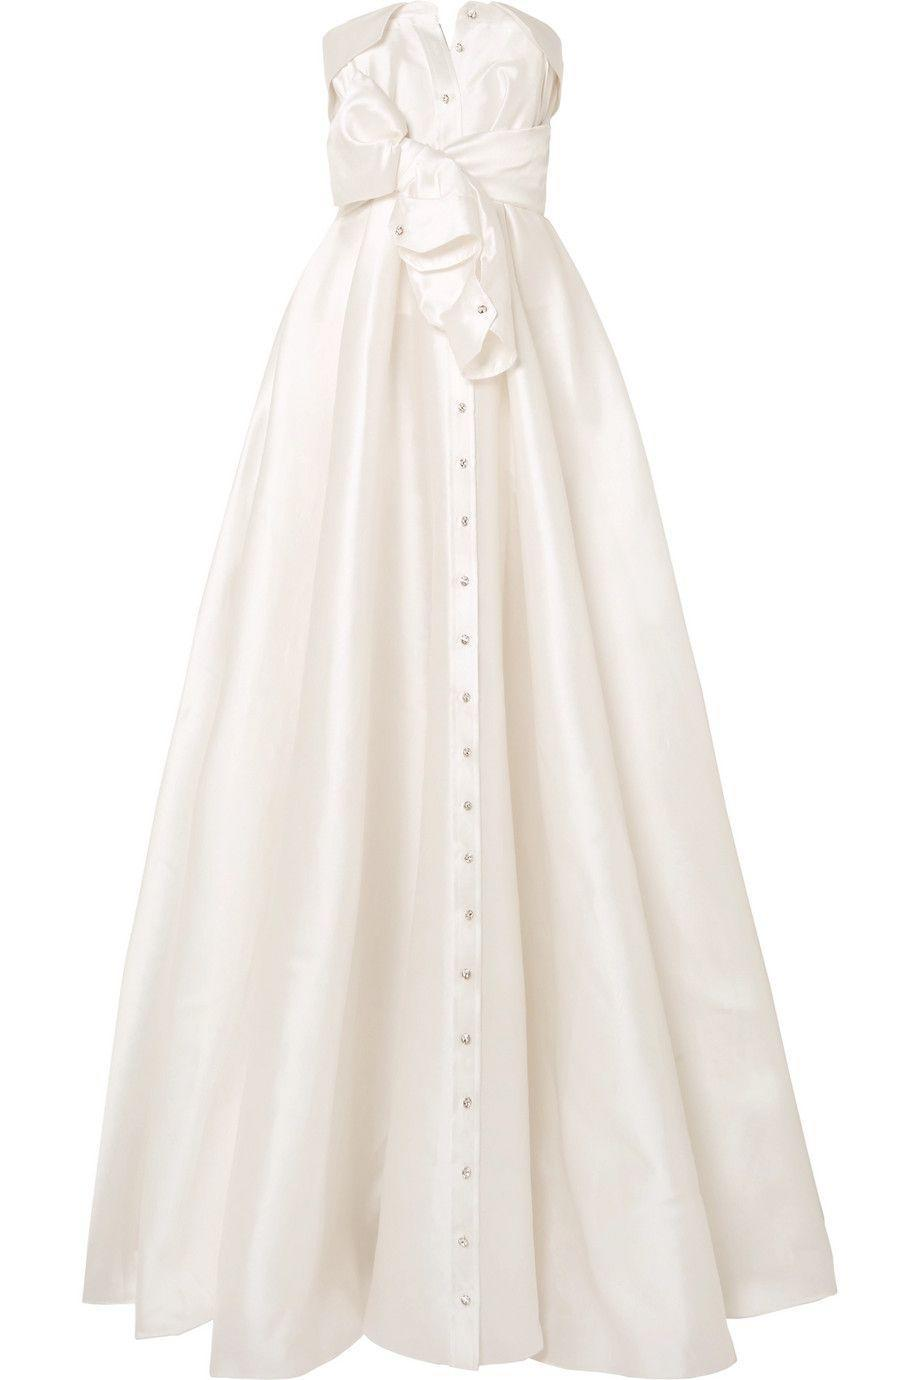 """<p><strong>Alexis Mabille</strong></p><p>net-a-porter.com</p><p><strong>$4290.00</strong></p><p><a href=""""https://go.redirectingat.com?id=74968X1596630&url=https%3A%2F%2Fwww.net-a-porter.com%2Fus%2Fen%2Fproduct%2F1071713&sref=https%3A%2F%2Fwww.harpersbazaar.com%2Fwedding%2Fbridal-fashion%2Fg7503%2Foff-the-rack-wedding-dresses%2F"""" rel=""""nofollow noopener"""" target=""""_blank"""" data-ylk=""""slk:SHOP NOW"""" class=""""link rapid-noclick-resp"""">SHOP NOW</a></p><p>A shirtdress-inspired ballgown that buttons up the front is formal— but at the same time, doesn't take itself too seriously. </p>"""